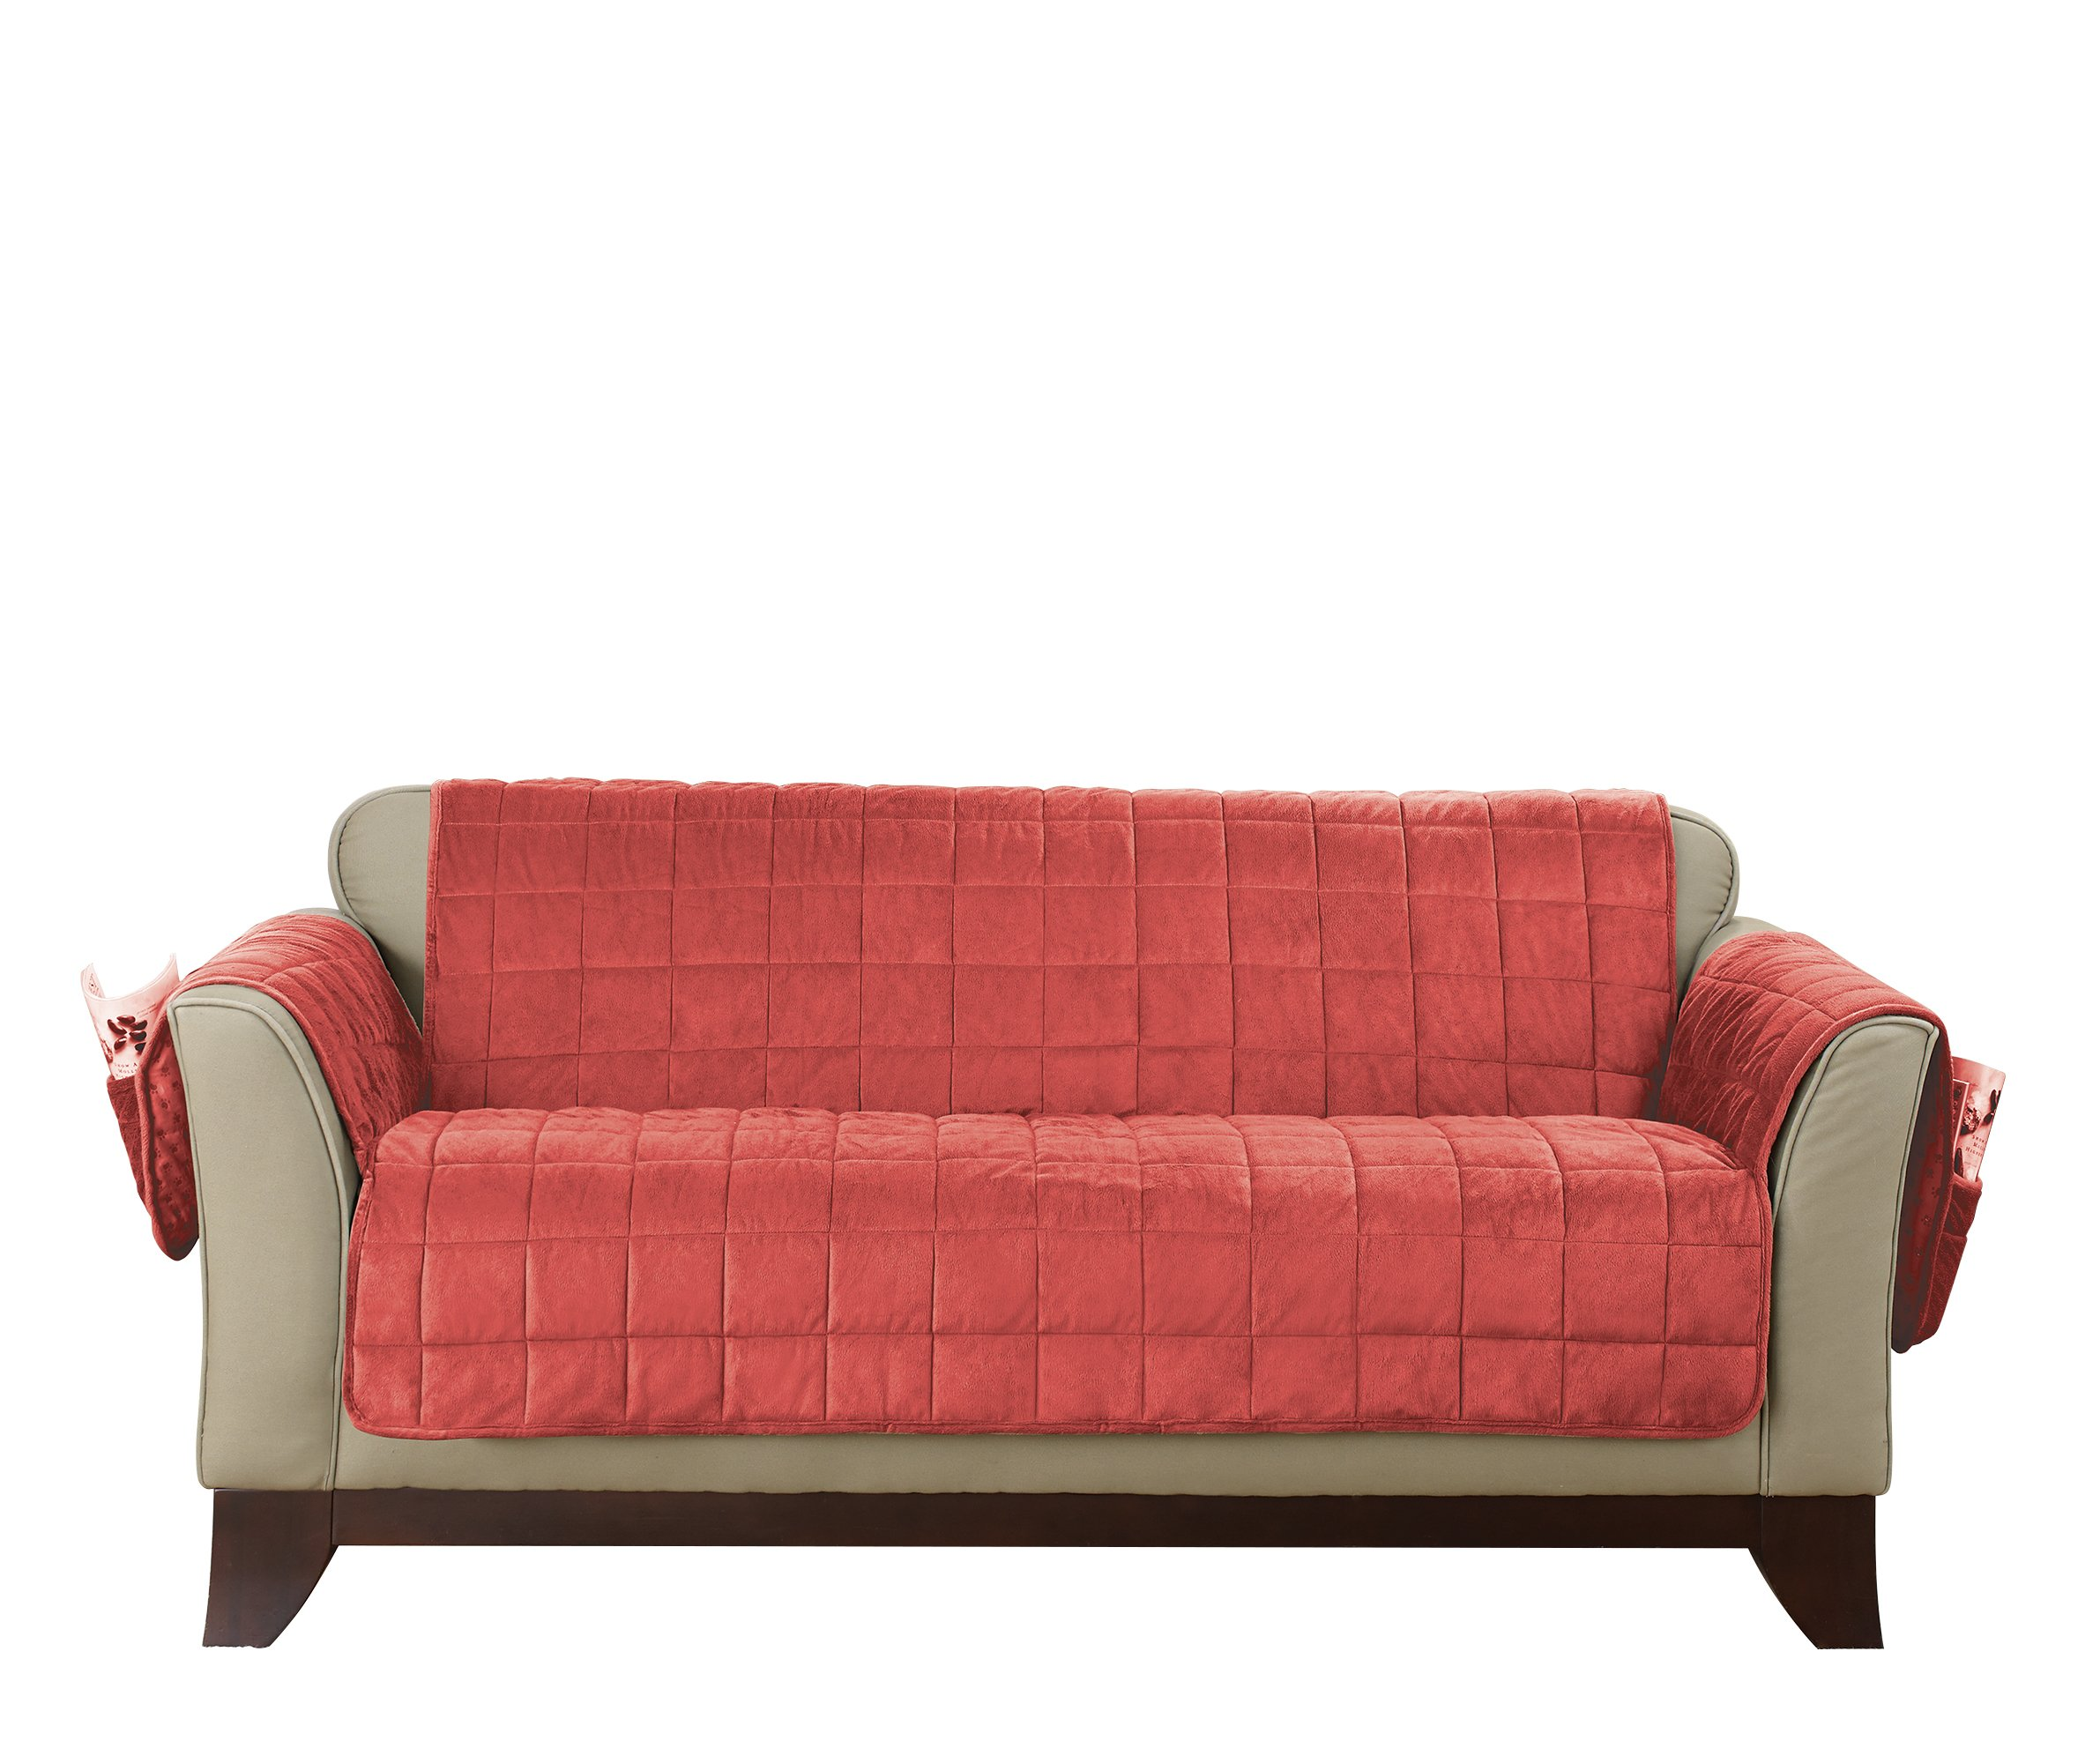 Deep Pile Velvet Loveseat Furniture Cover - Coral